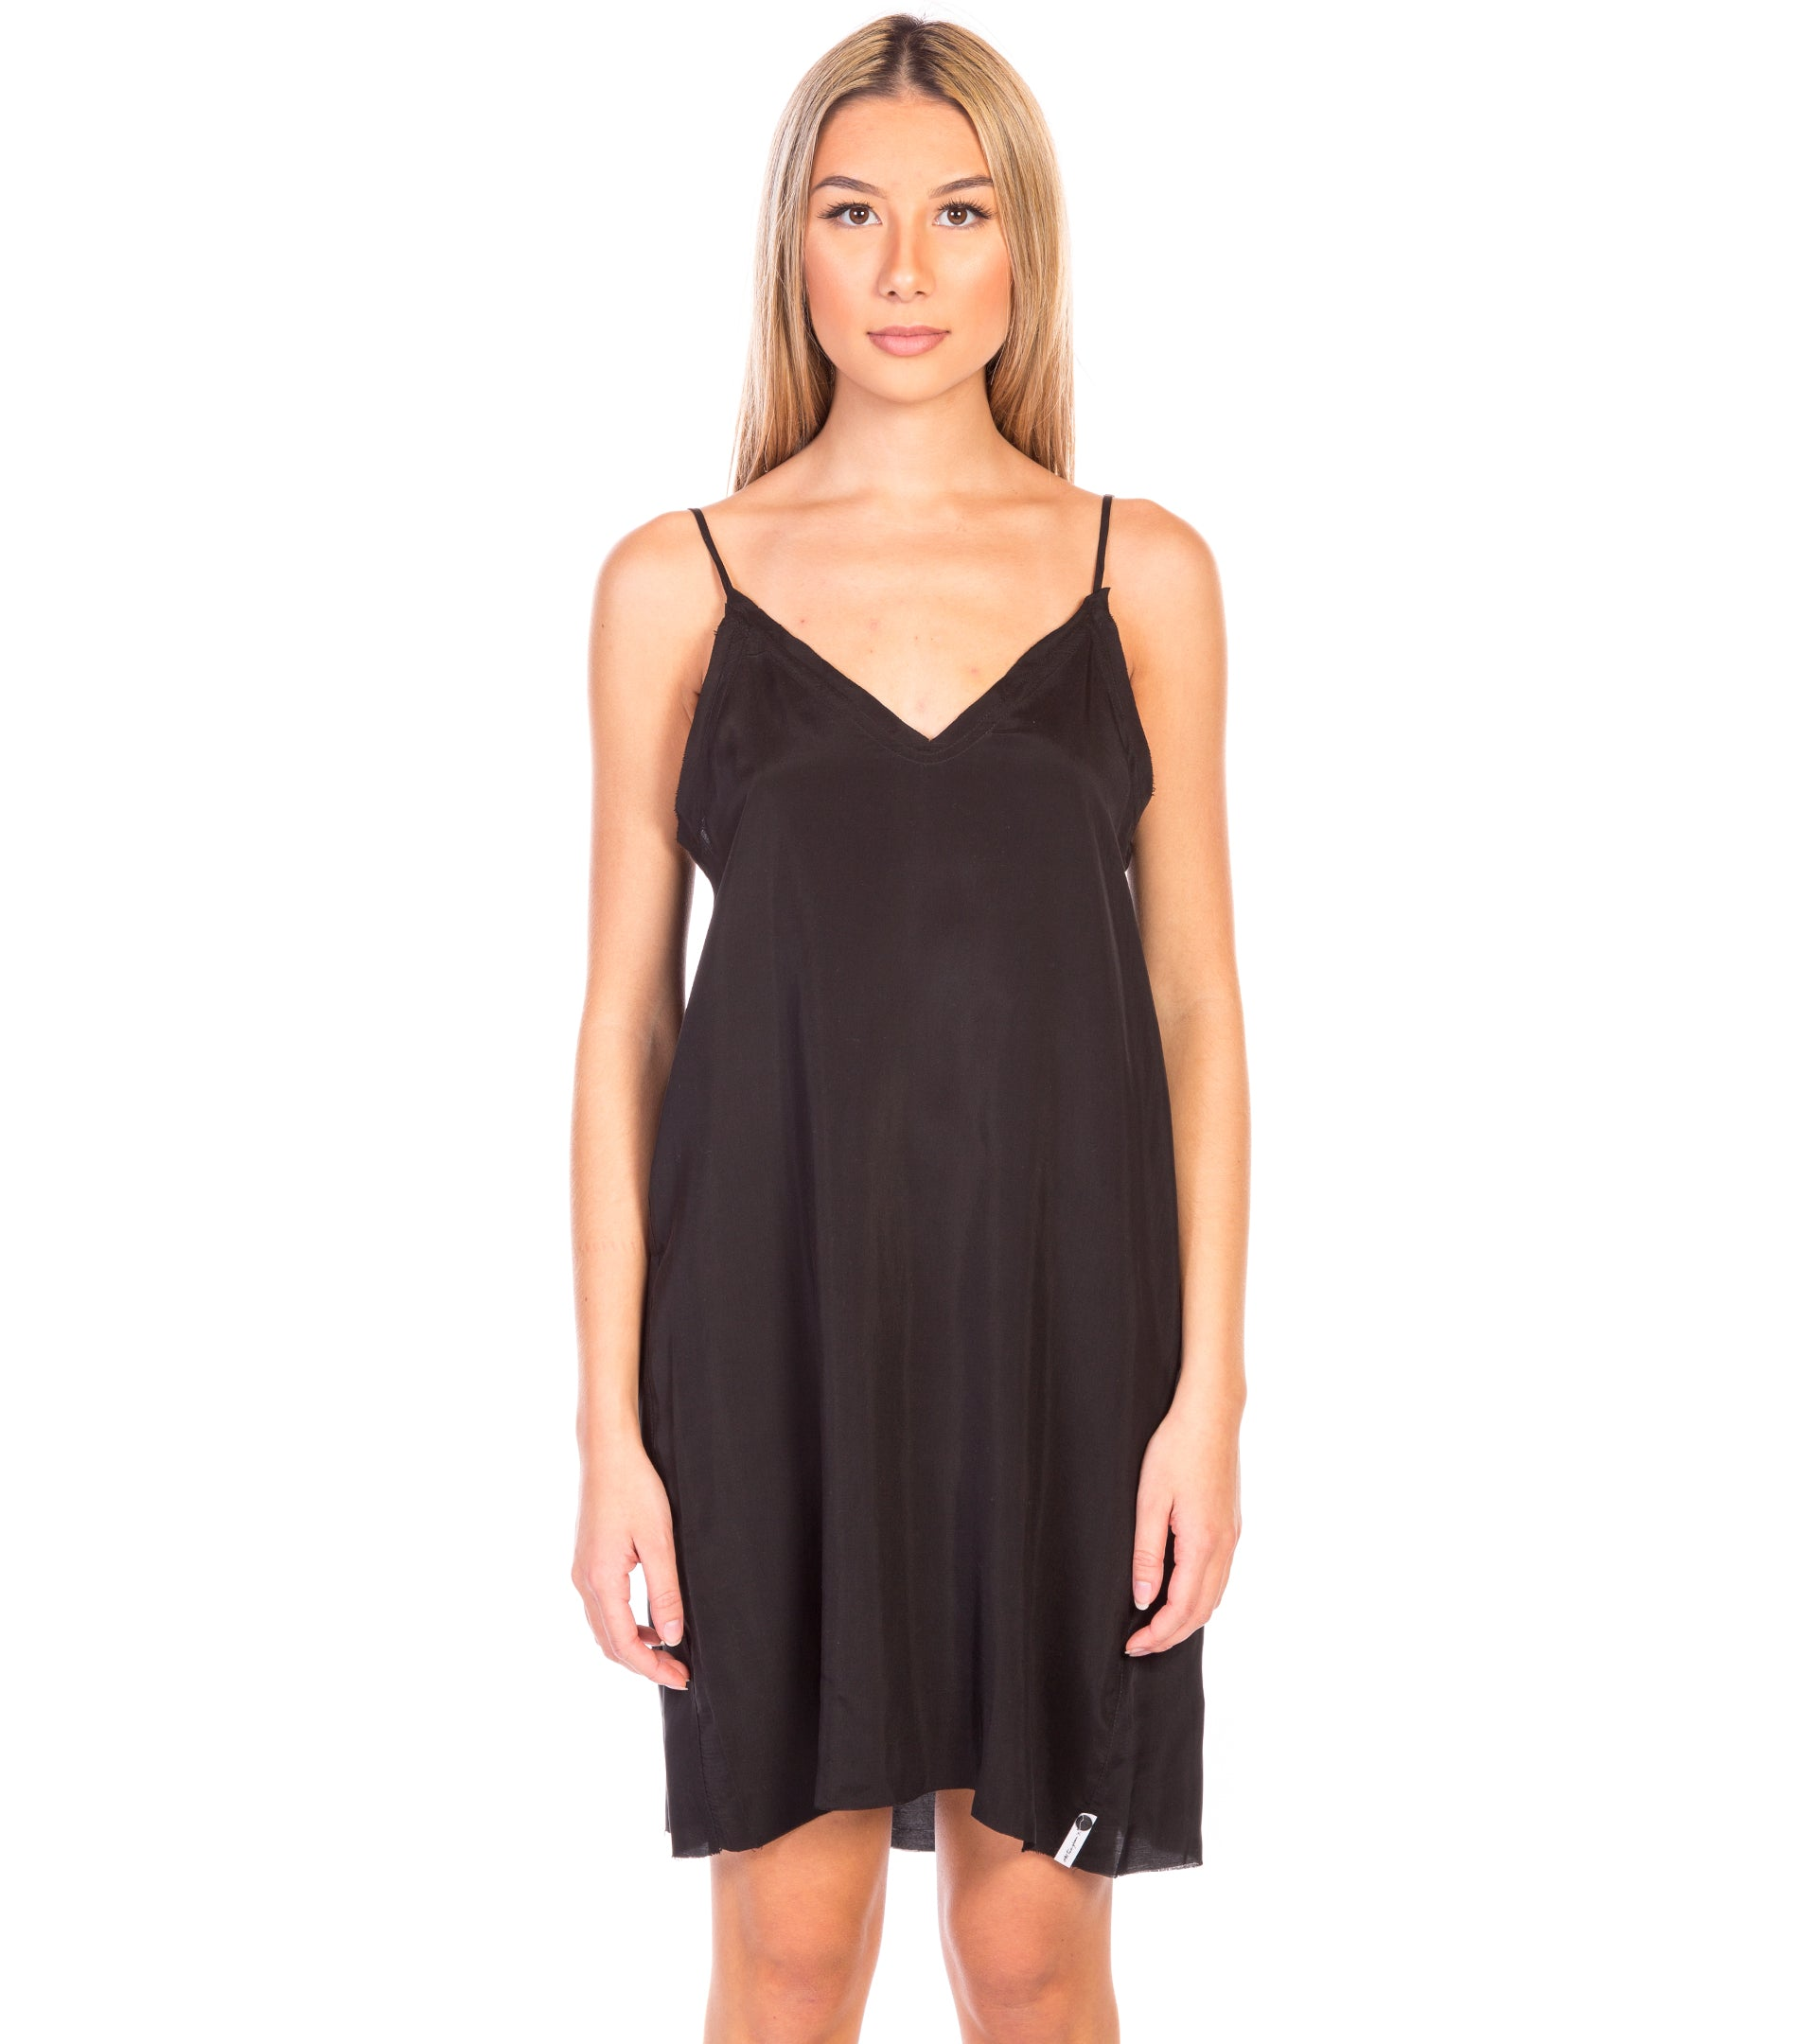 RINGLEADER SLIP DRESS